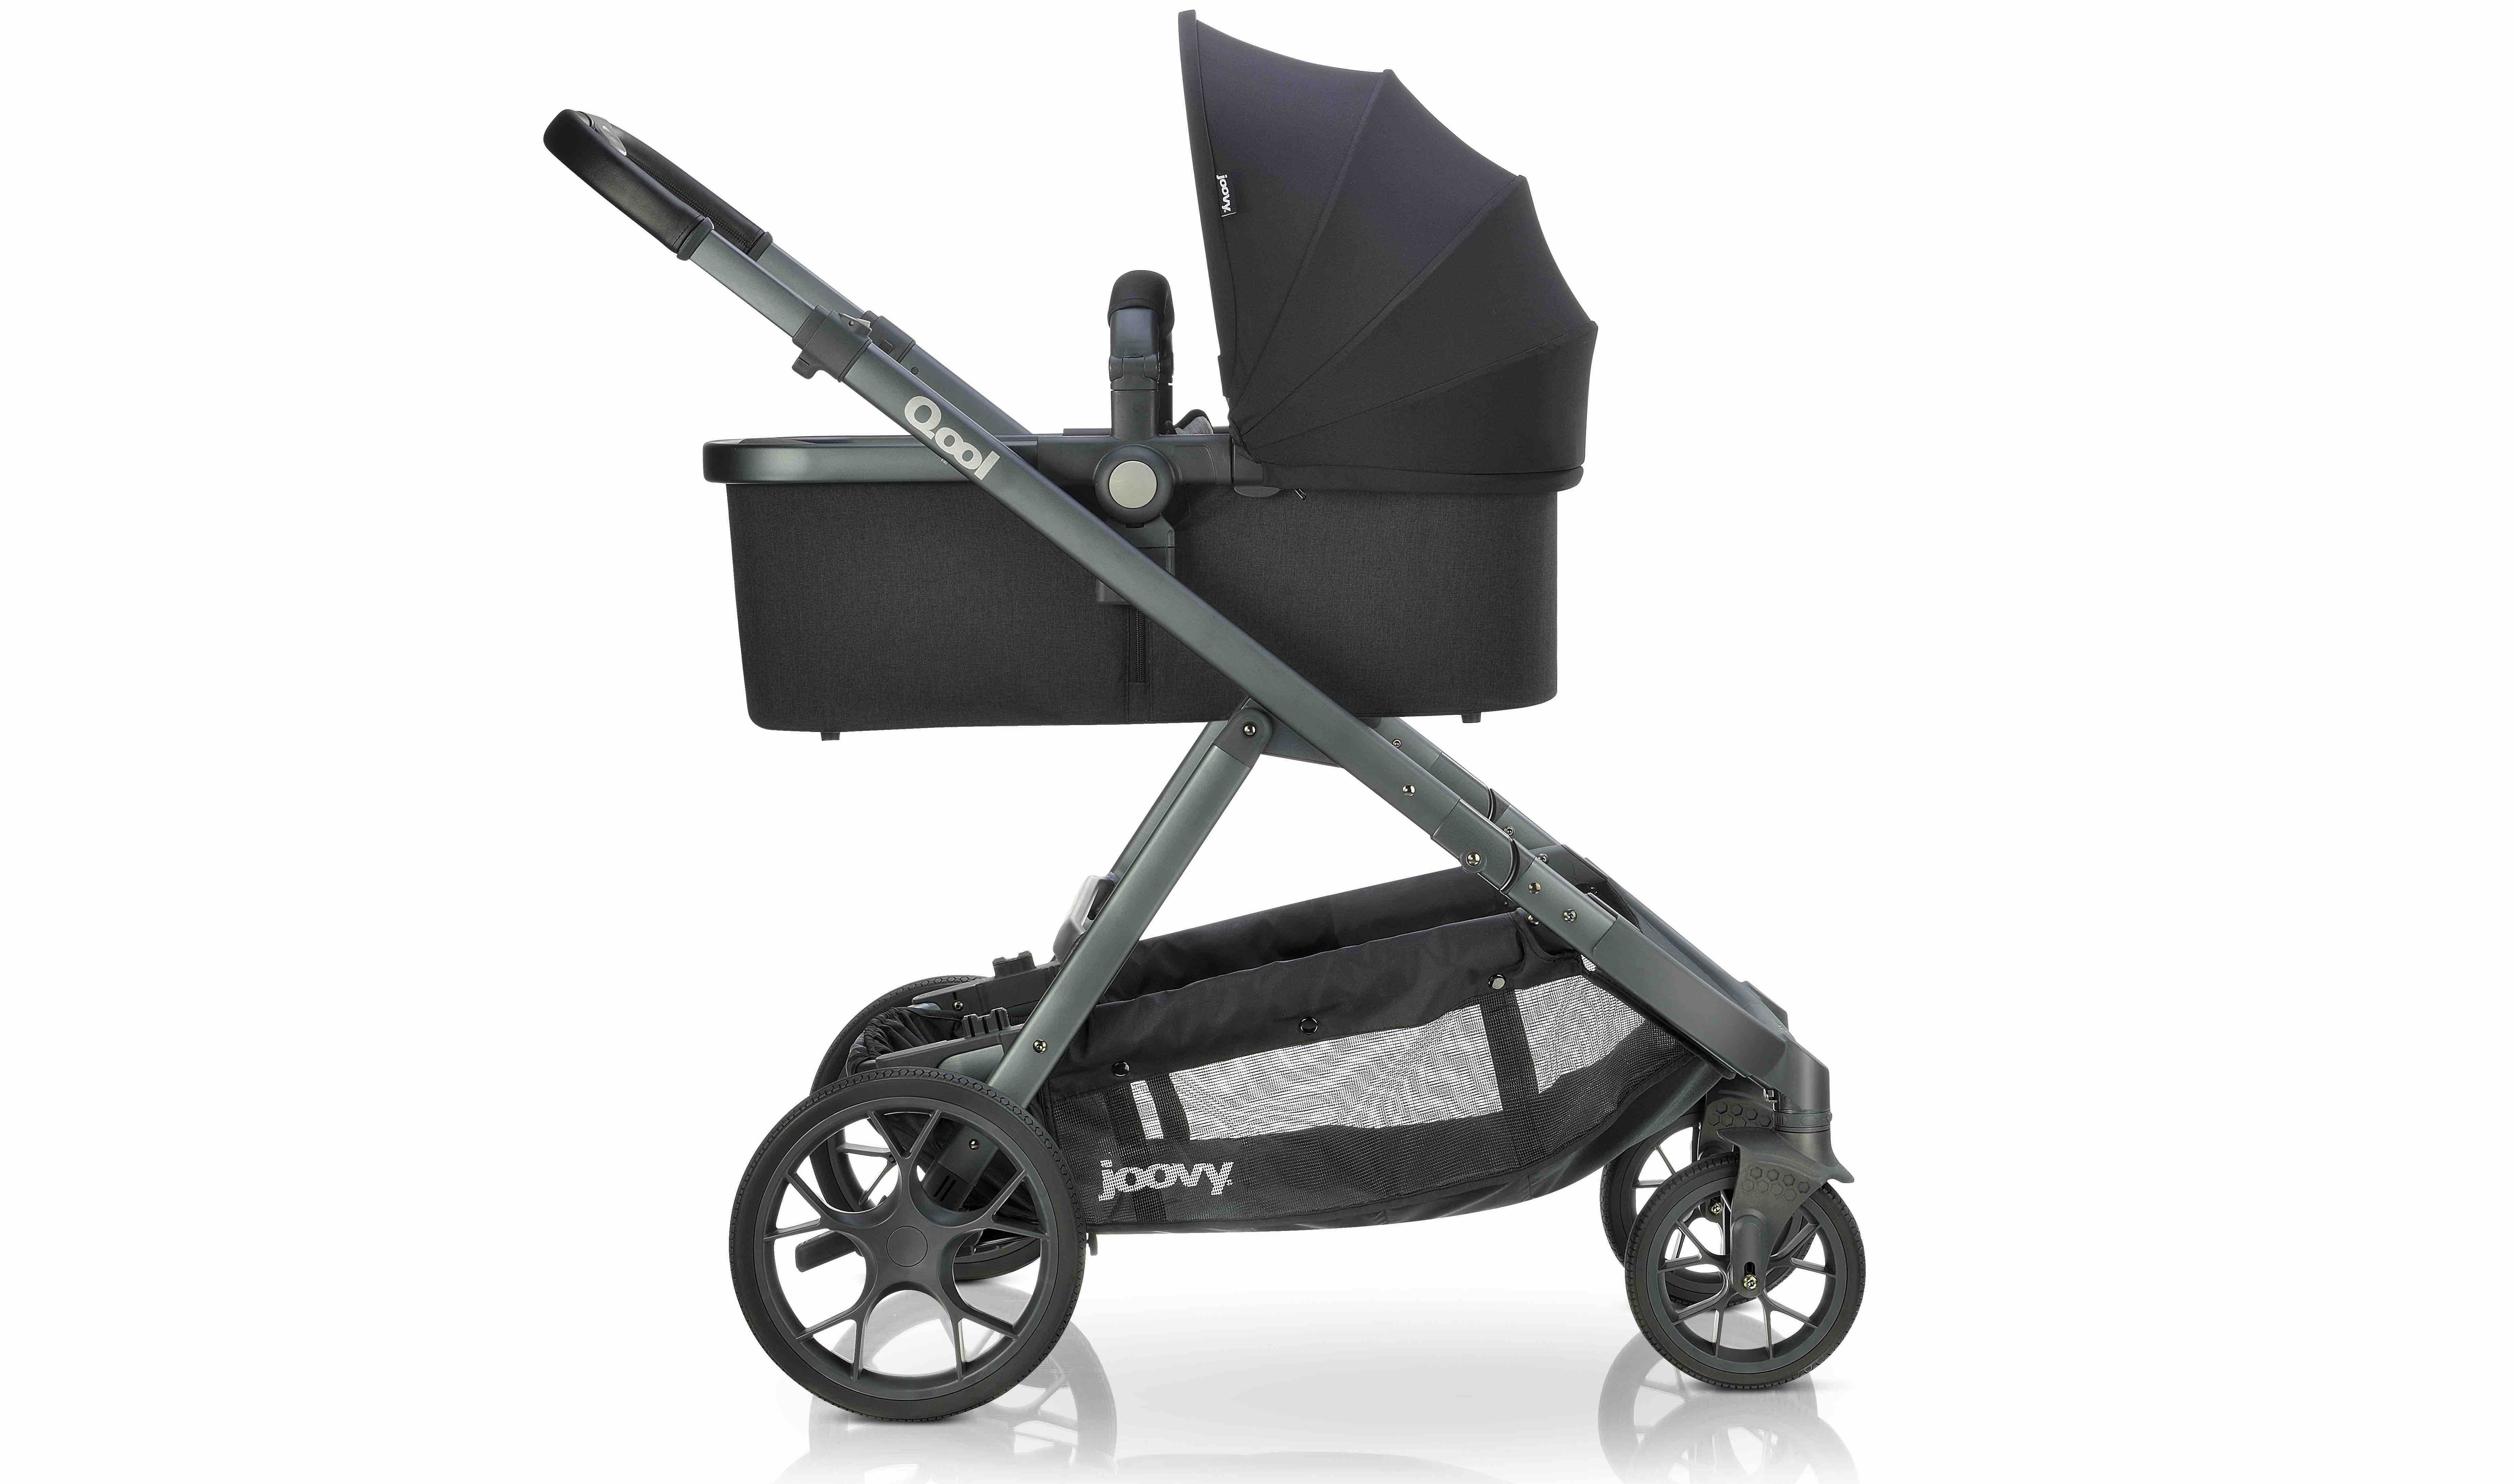 Qool in 2020 Stroller, Strollers at disney world, How to